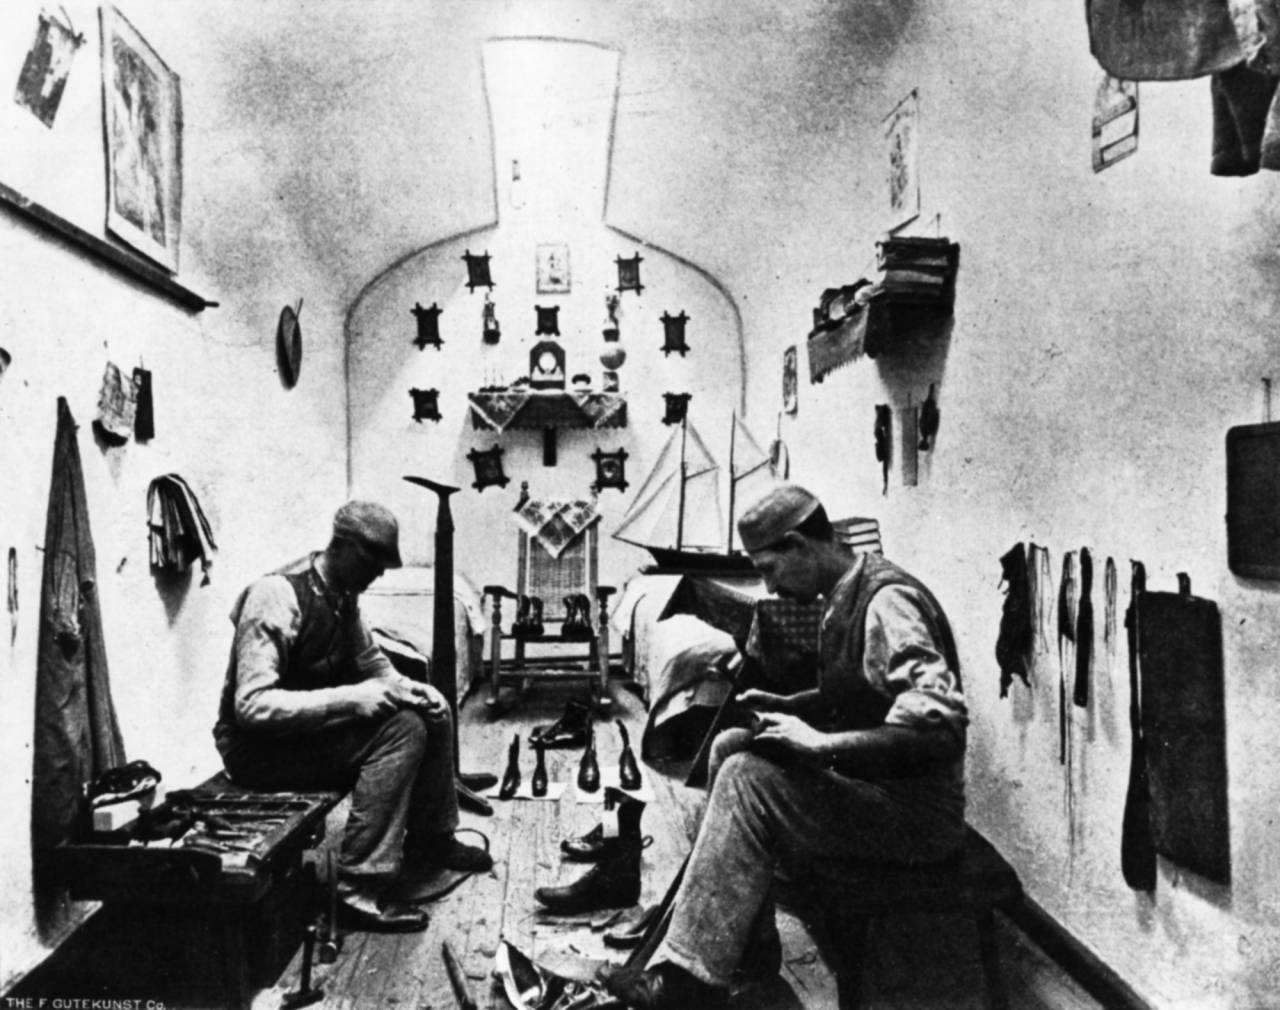 Inmates shoemaking, c. 1897. Photo: collection of Eastern State Penitentiary Historic Site, from Warden Cassidy on Prisons and Convicts.